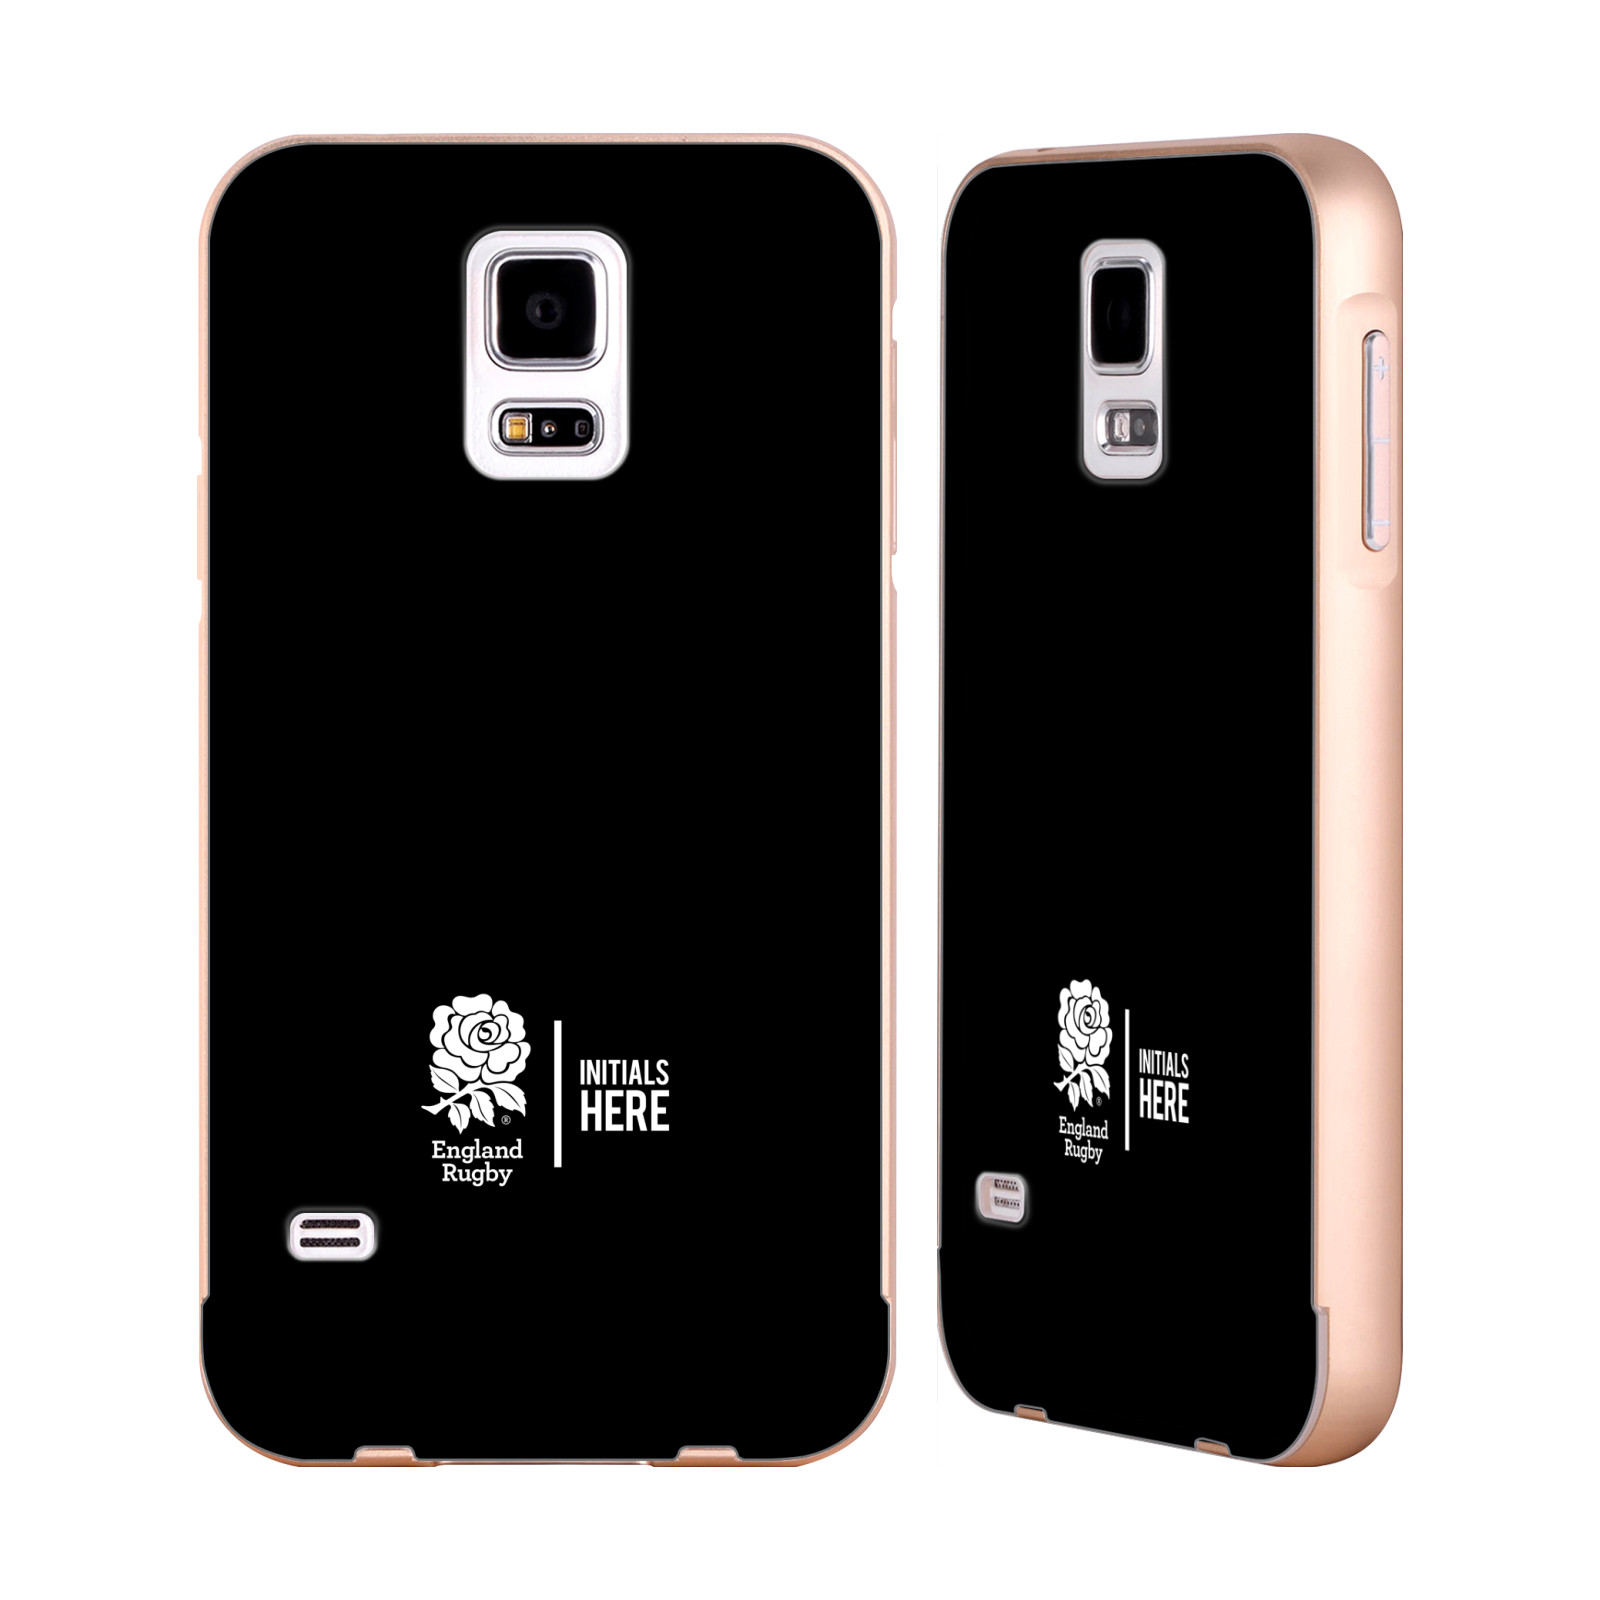 ENGLAND-RUGBY-UNION-COUTUME-PERSONNALISE-ROSE-OR-ETUI-COQUE-SLIDER-POUR-SAMSUNG